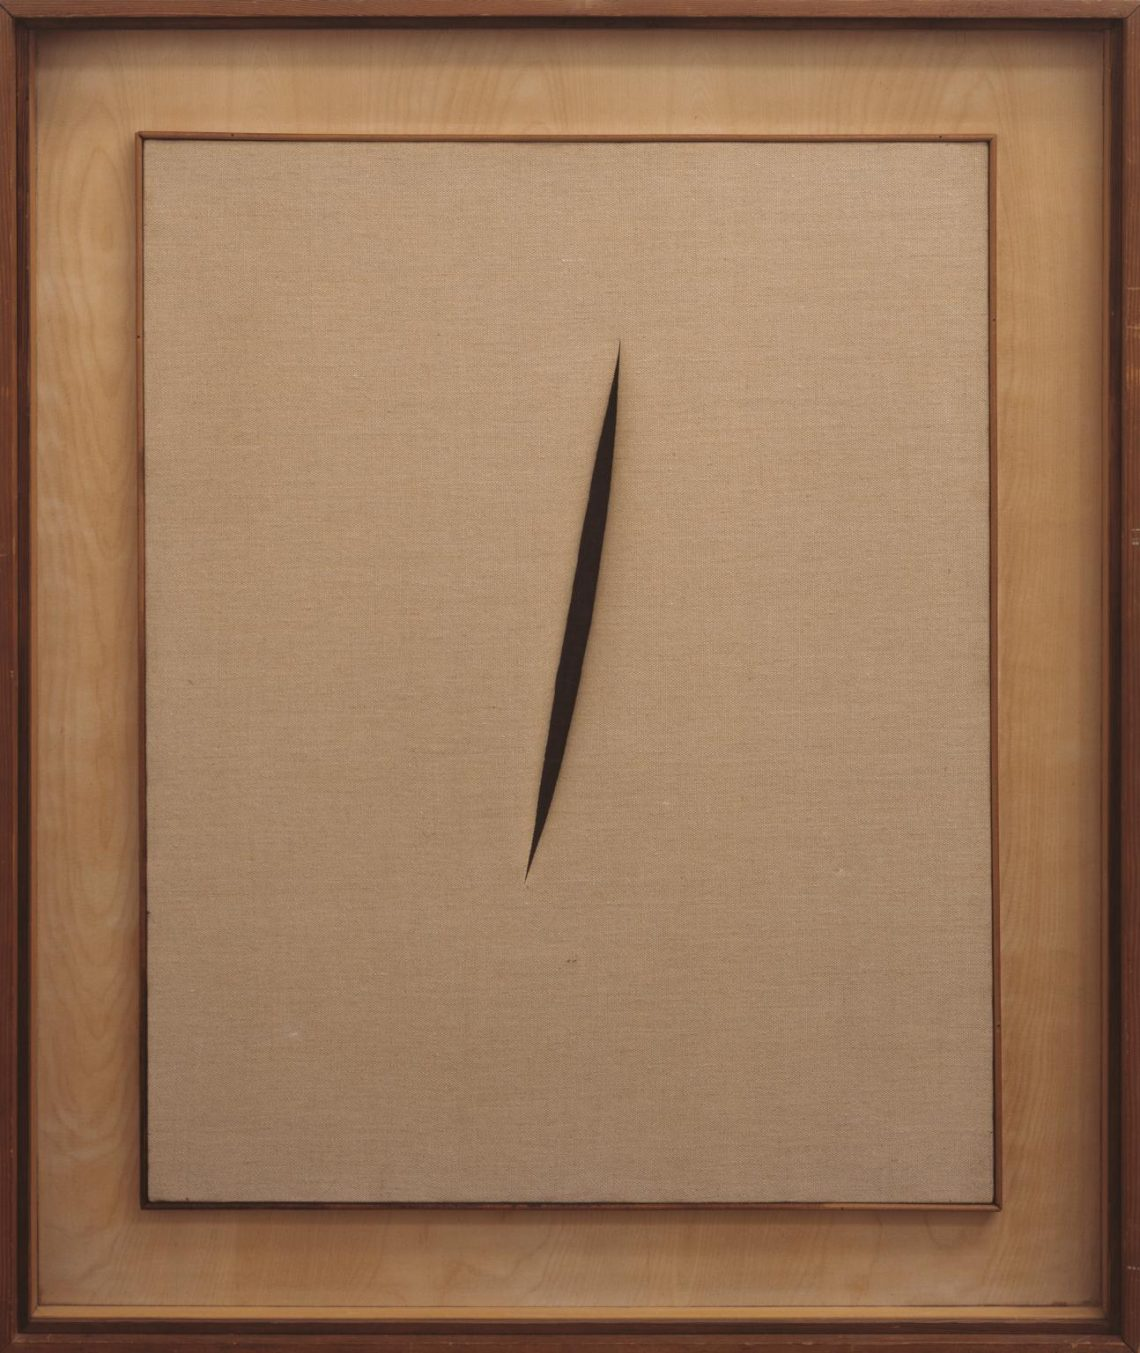 Spatial Concept 'Waiting' 1960 by Lucio Fontana 1899-1968